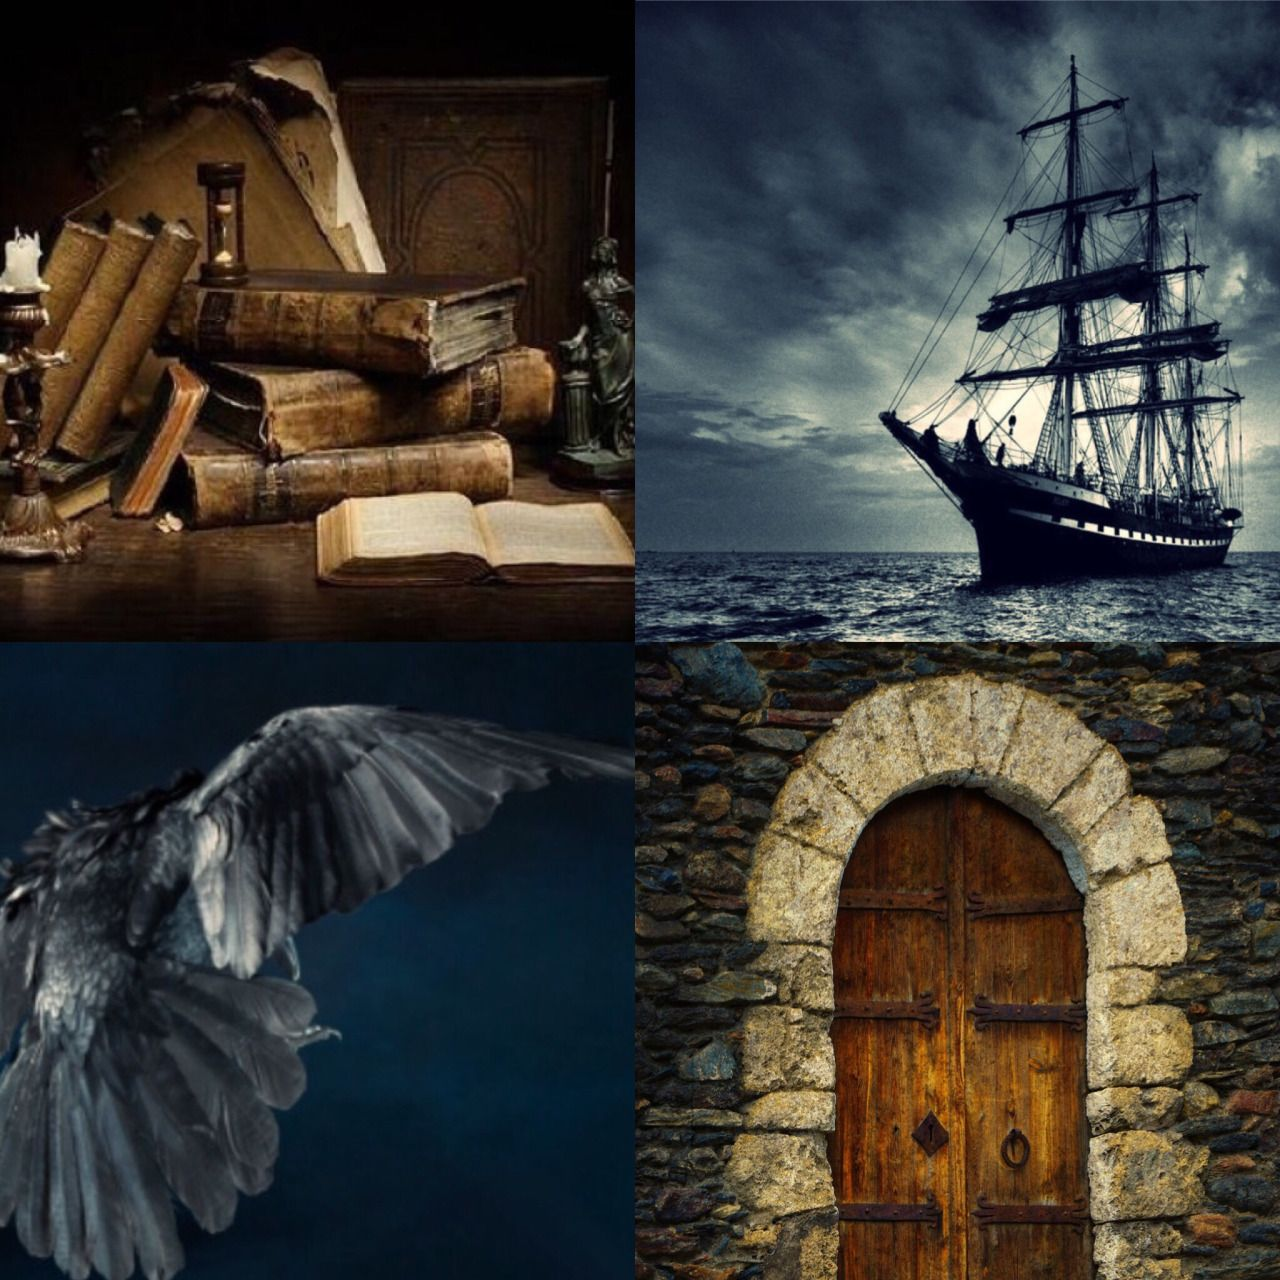 Thesuperwholockguardian Harry Potter Fantastic Beasts Mountain Lake Want to discover art related to durmstrang? pinterest